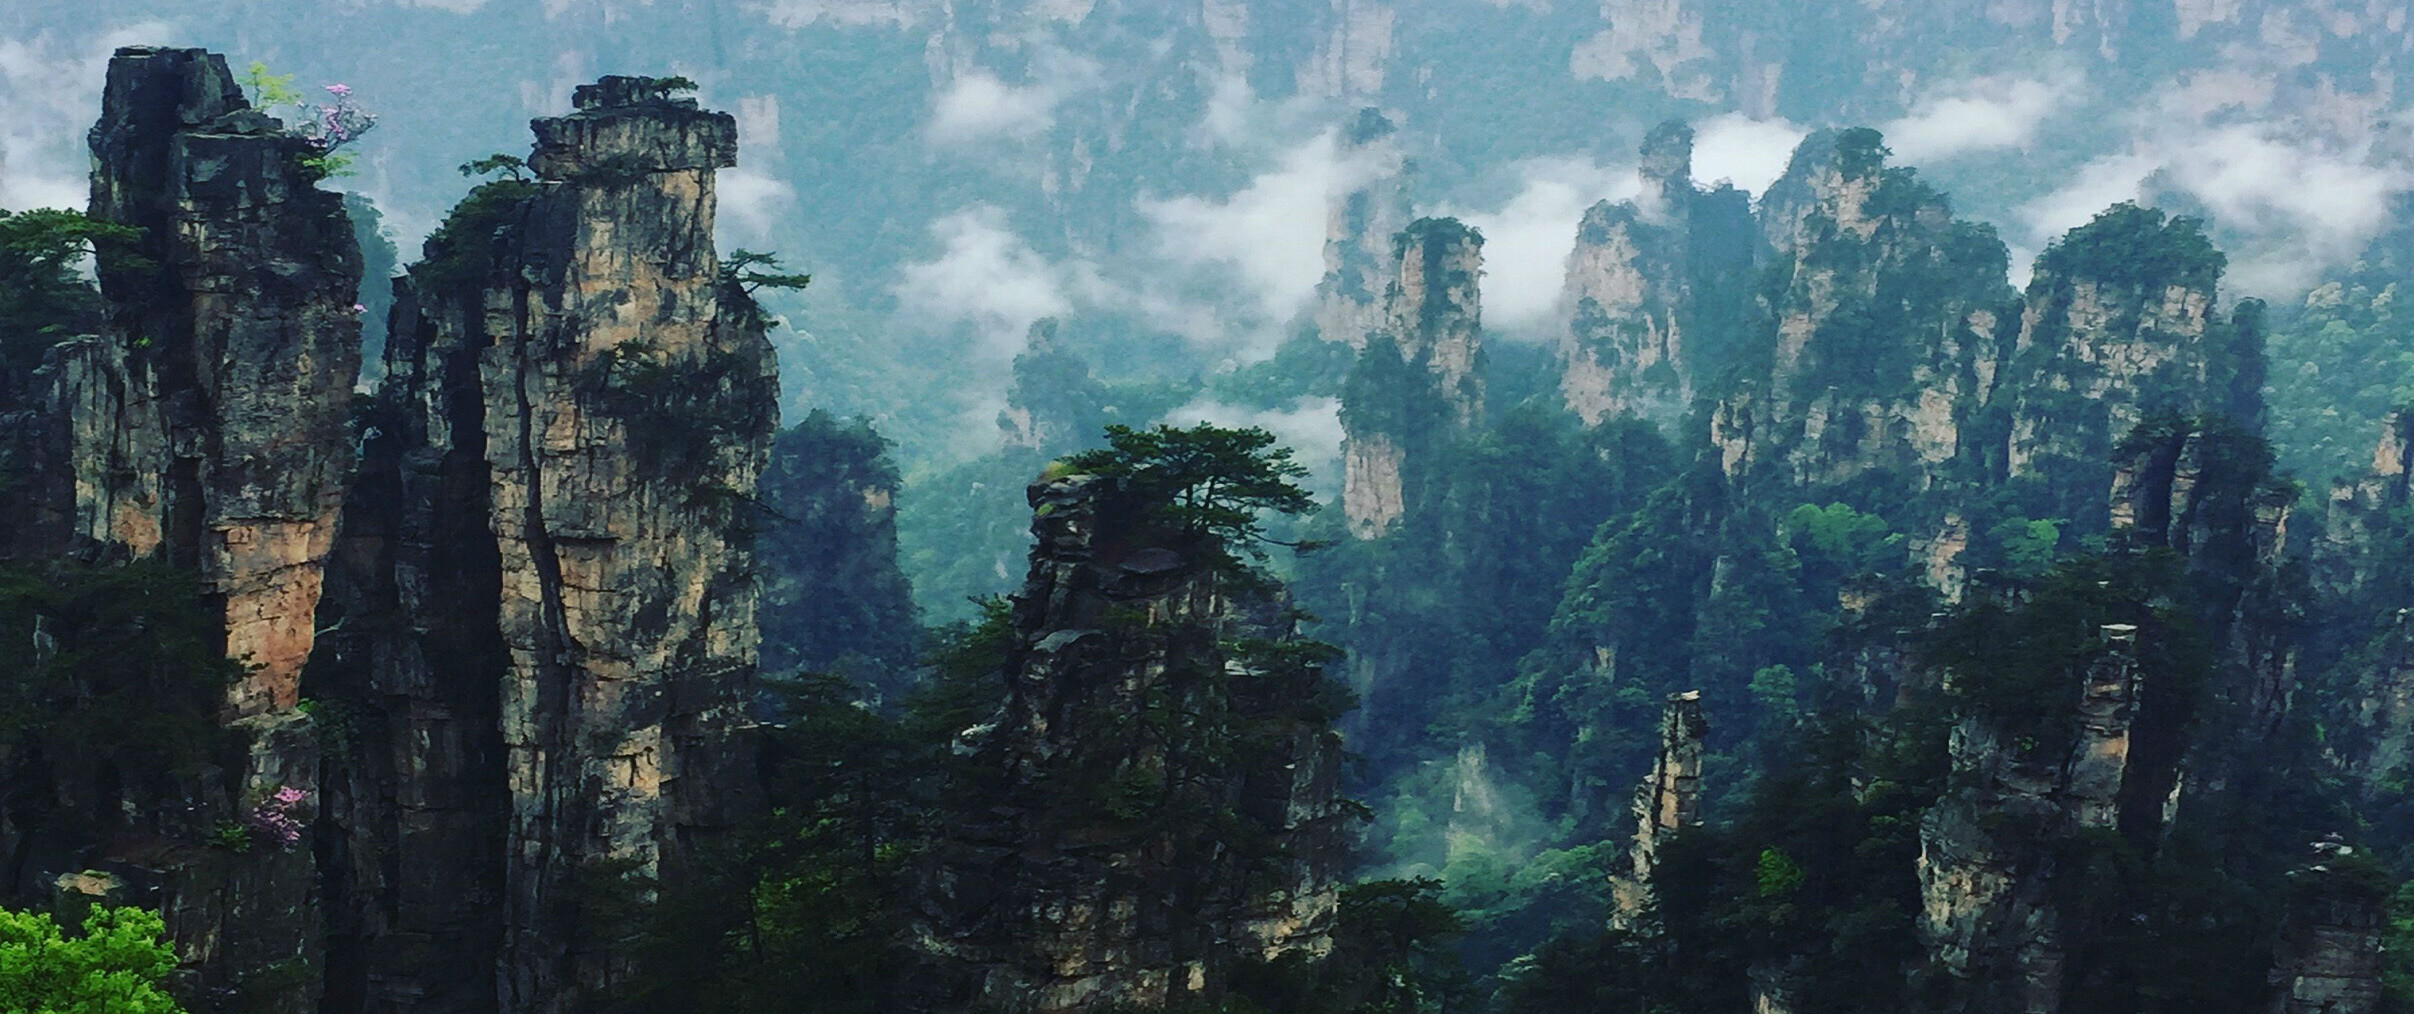 Tianzi Mountain.jpg